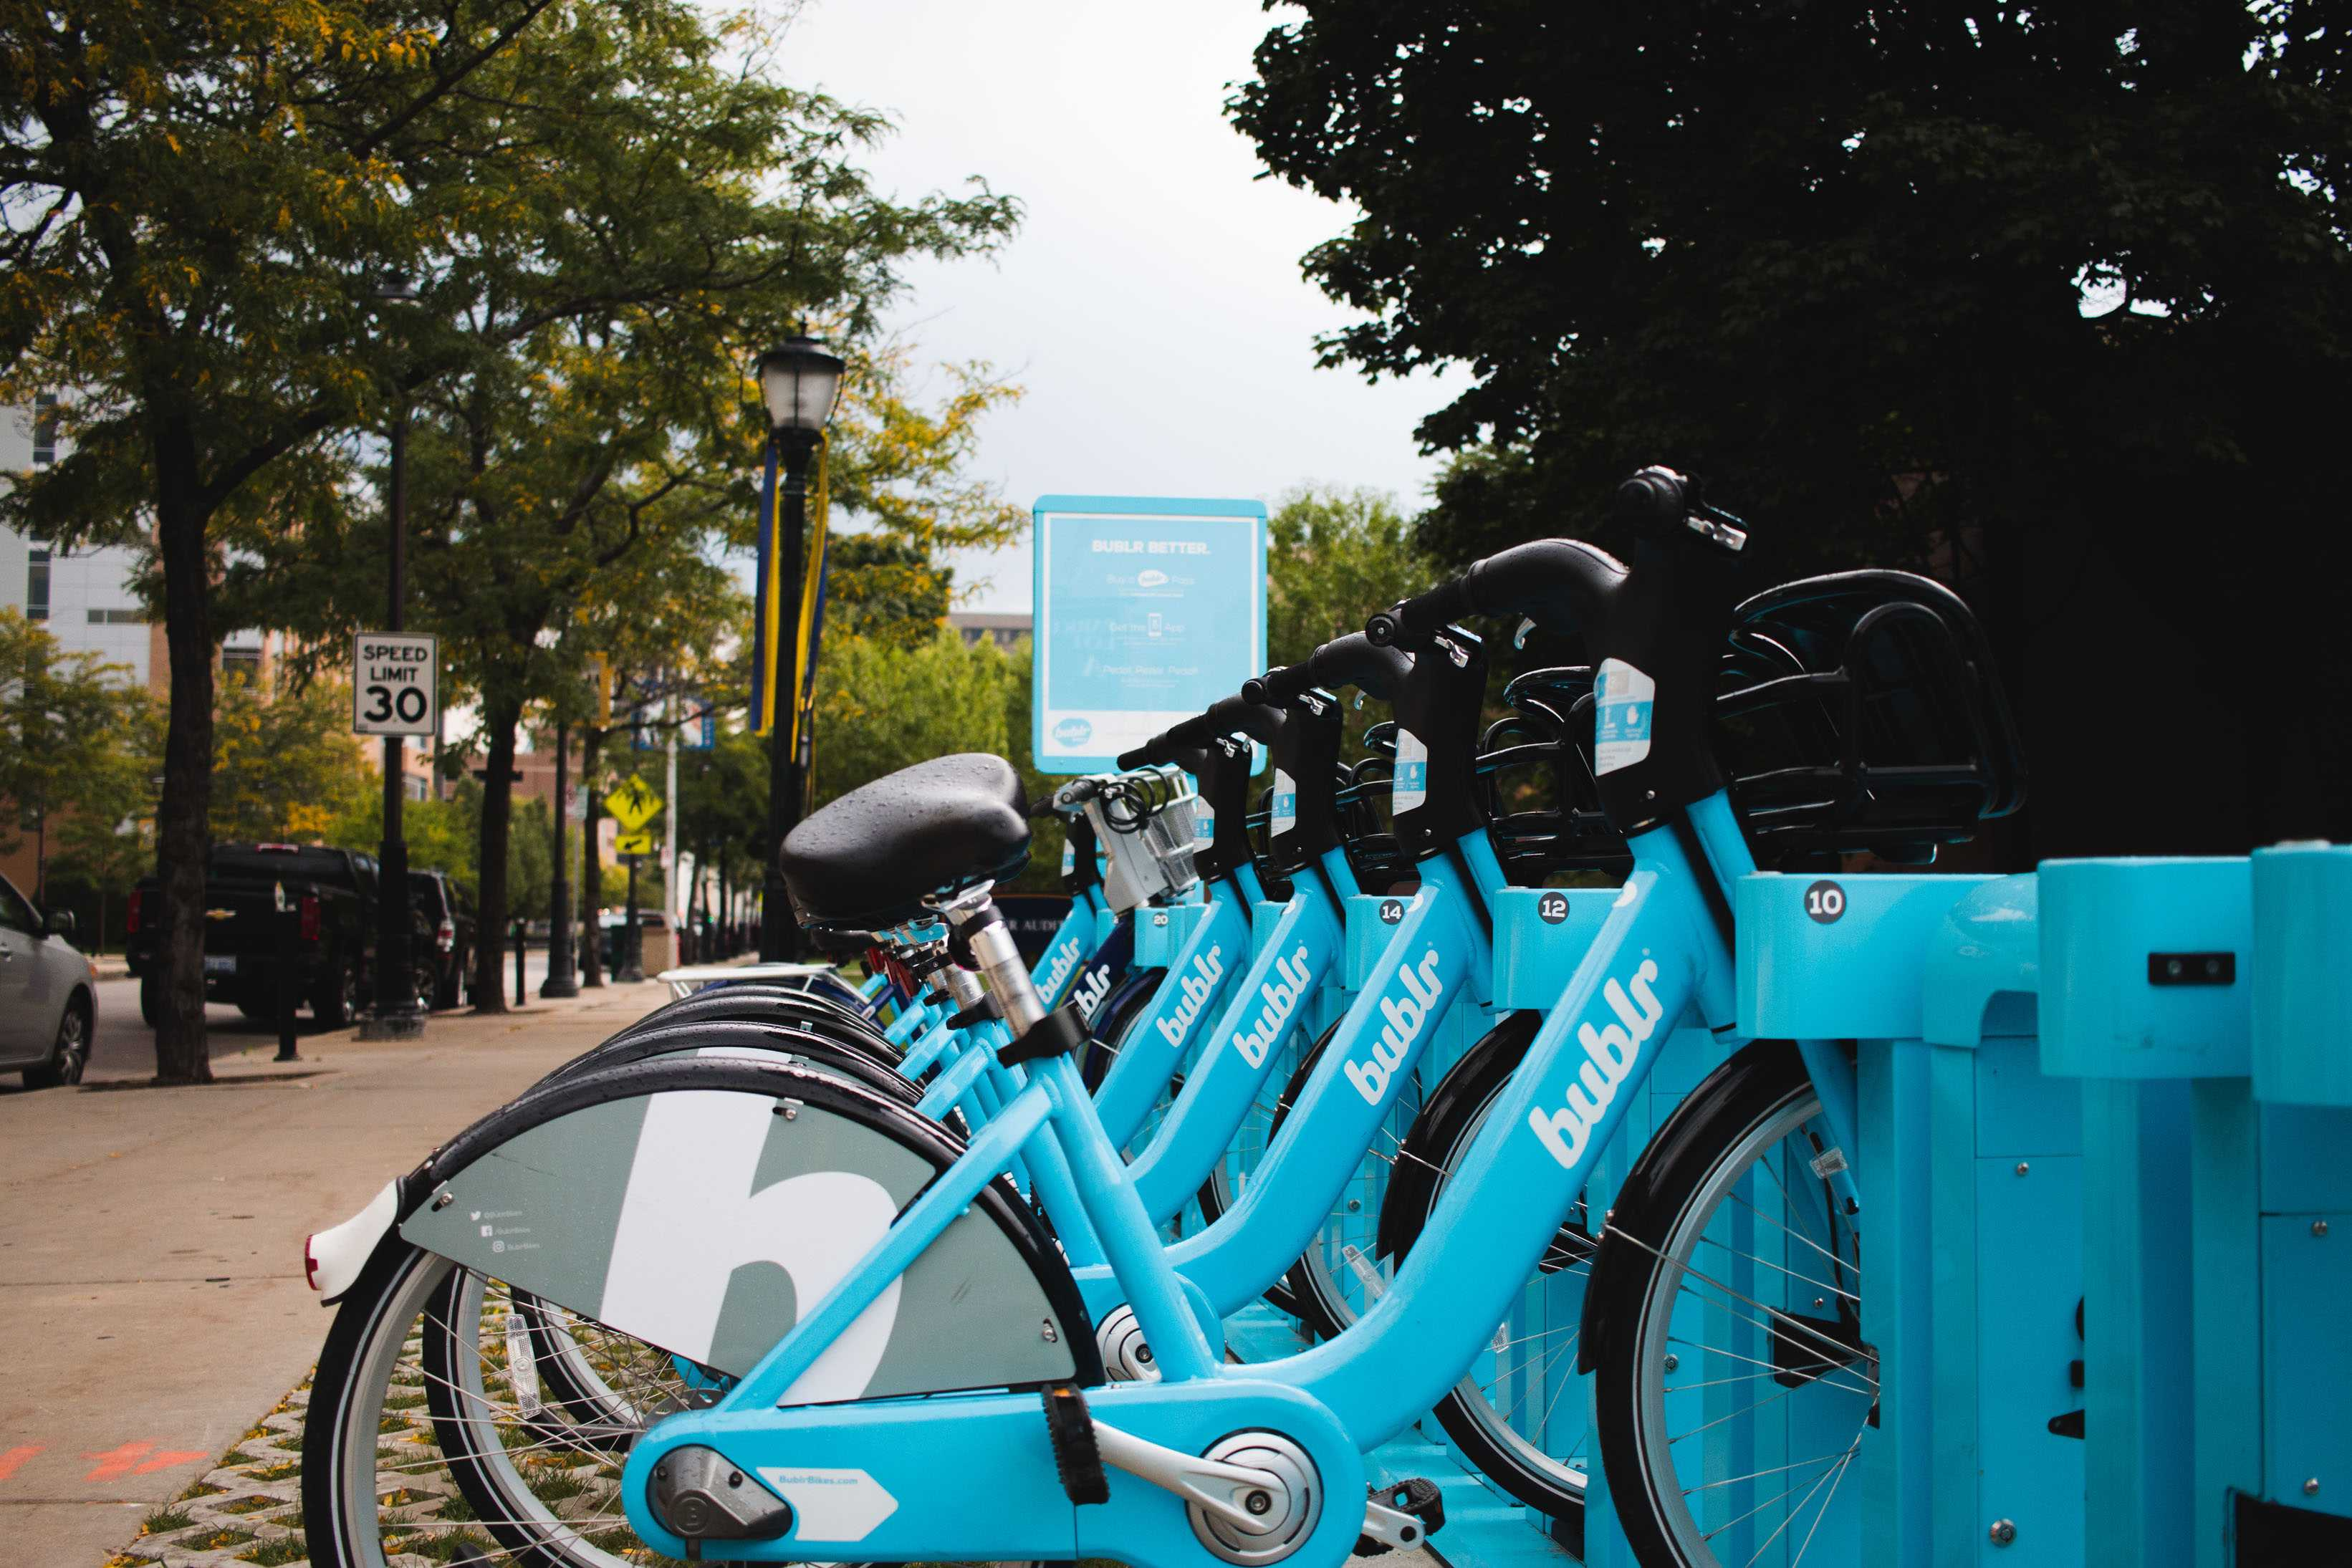 The Bublr bikes are popular among students looking to quickly and easily get around.